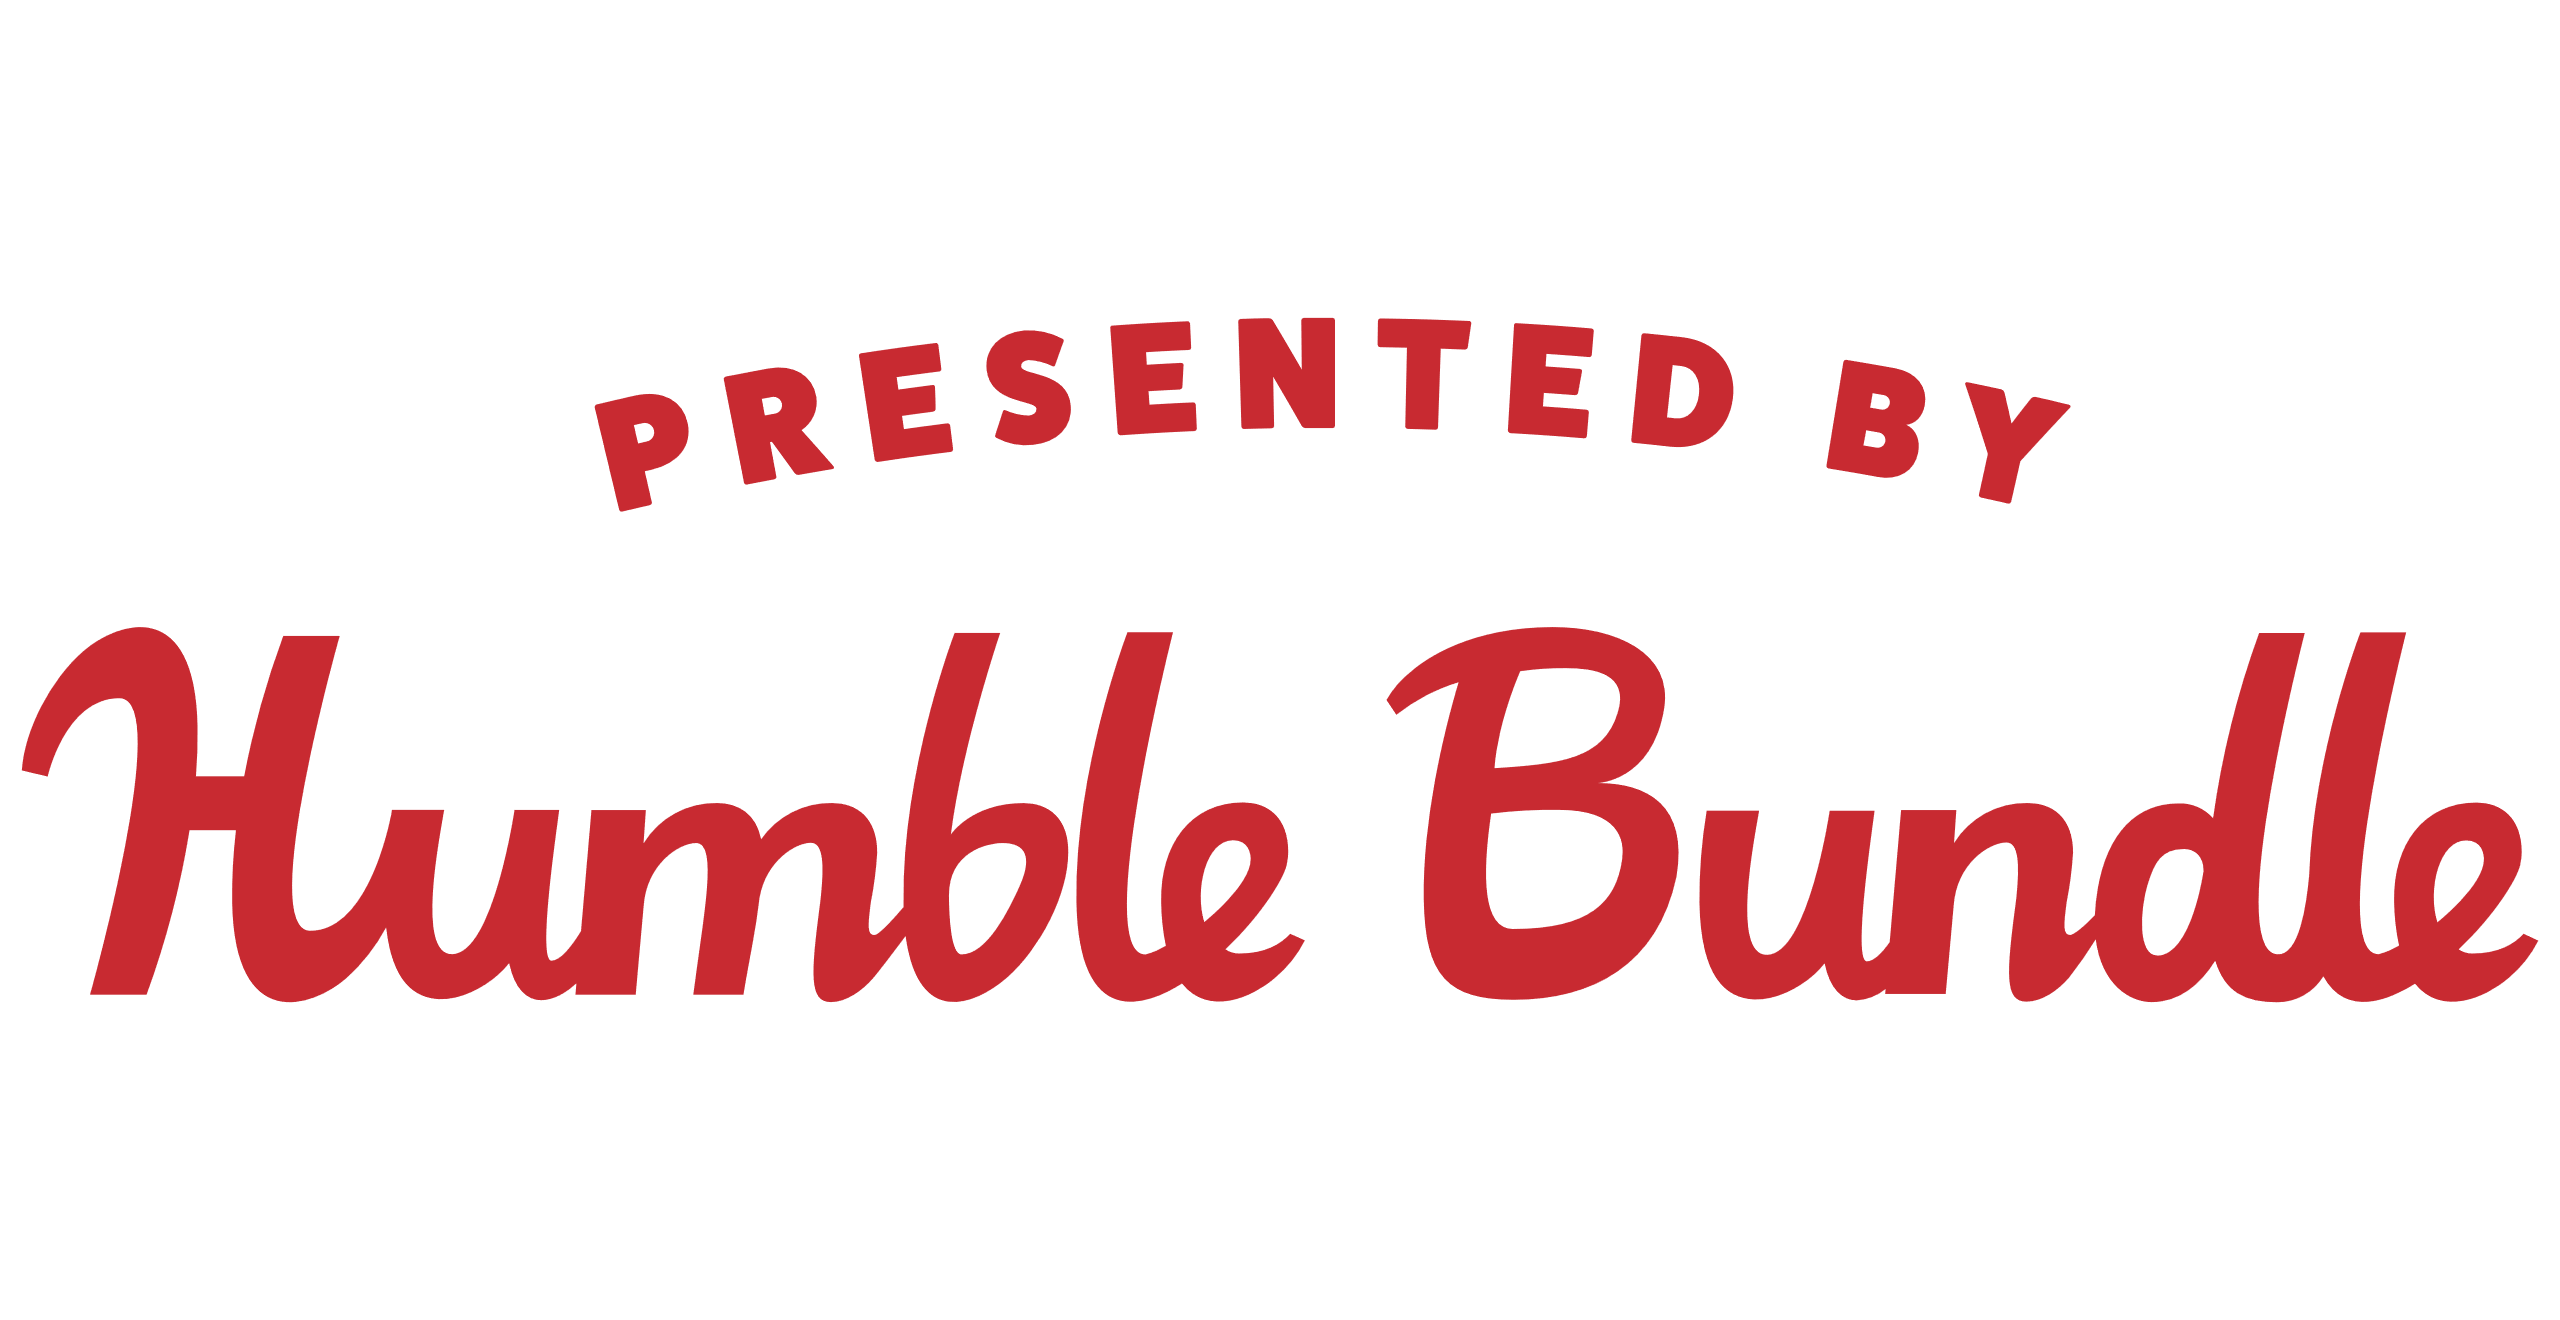 Humble Bundle to Showcase Five Games in Gamescom and PAX West - Games Are Published Under Humble Bundle's Brand